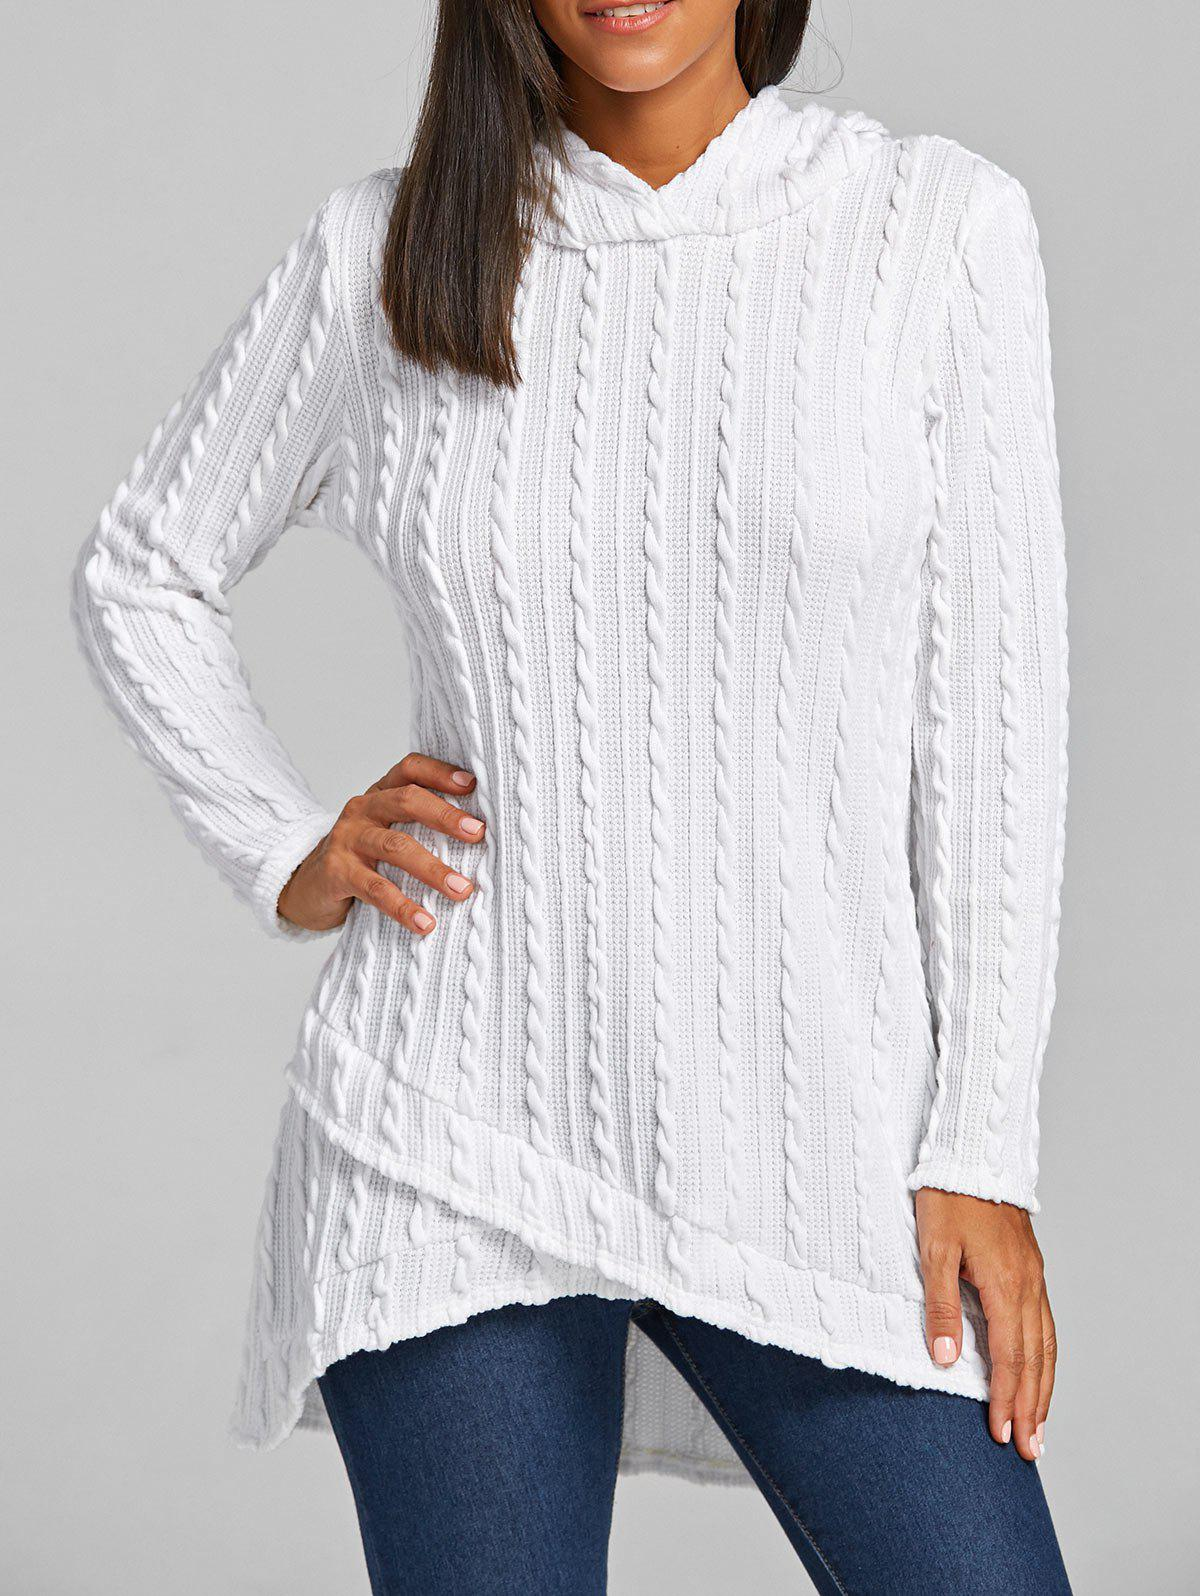 2018 Hooded Cable Knitted Tunic Sweater WHITE M In Sweaters ...